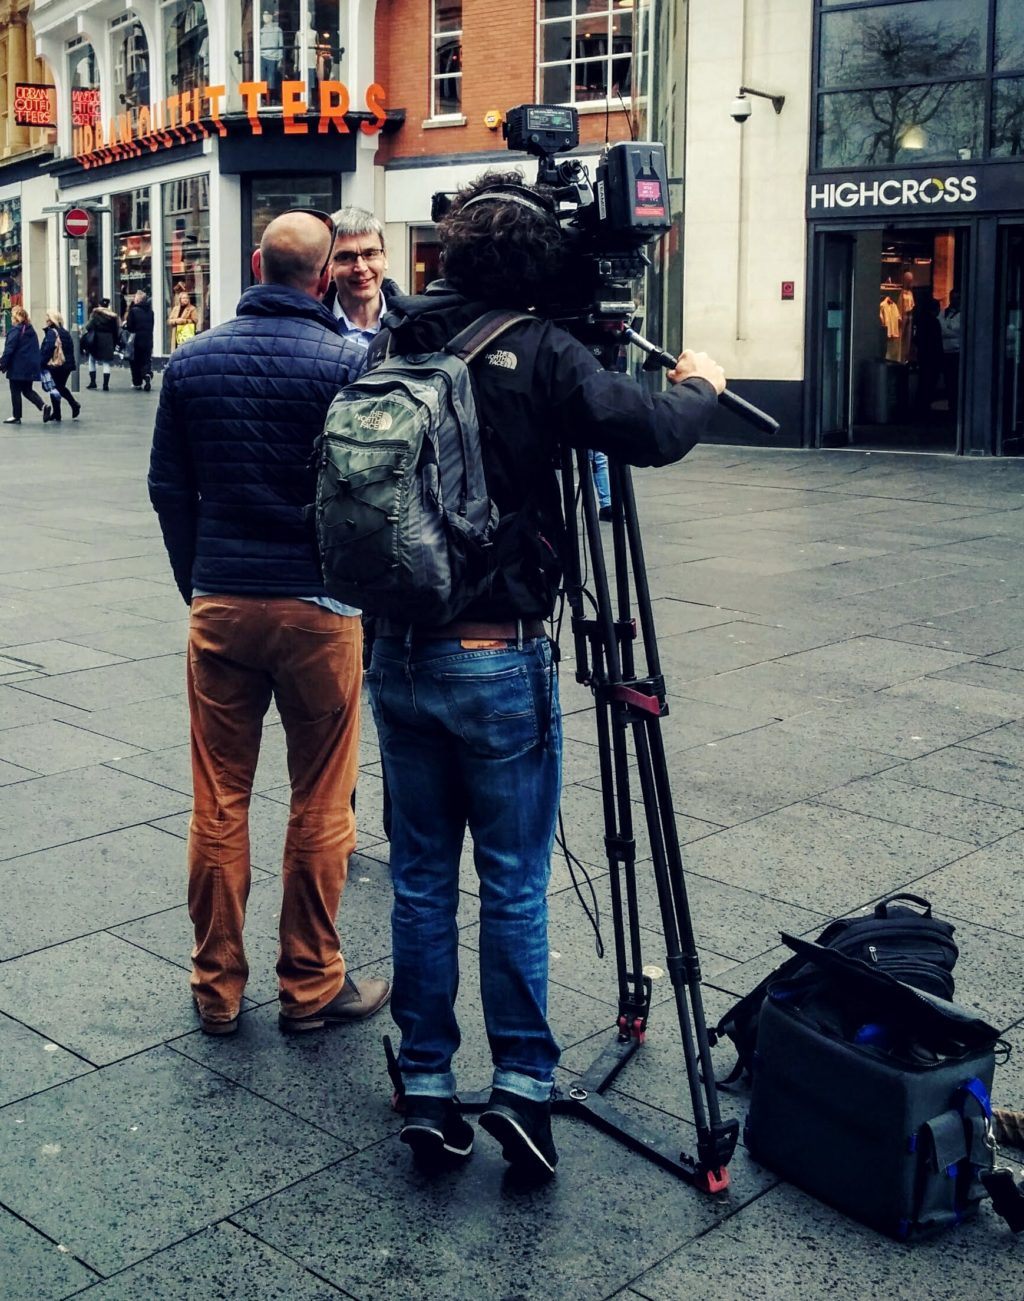 Man being interviewed by TV crew